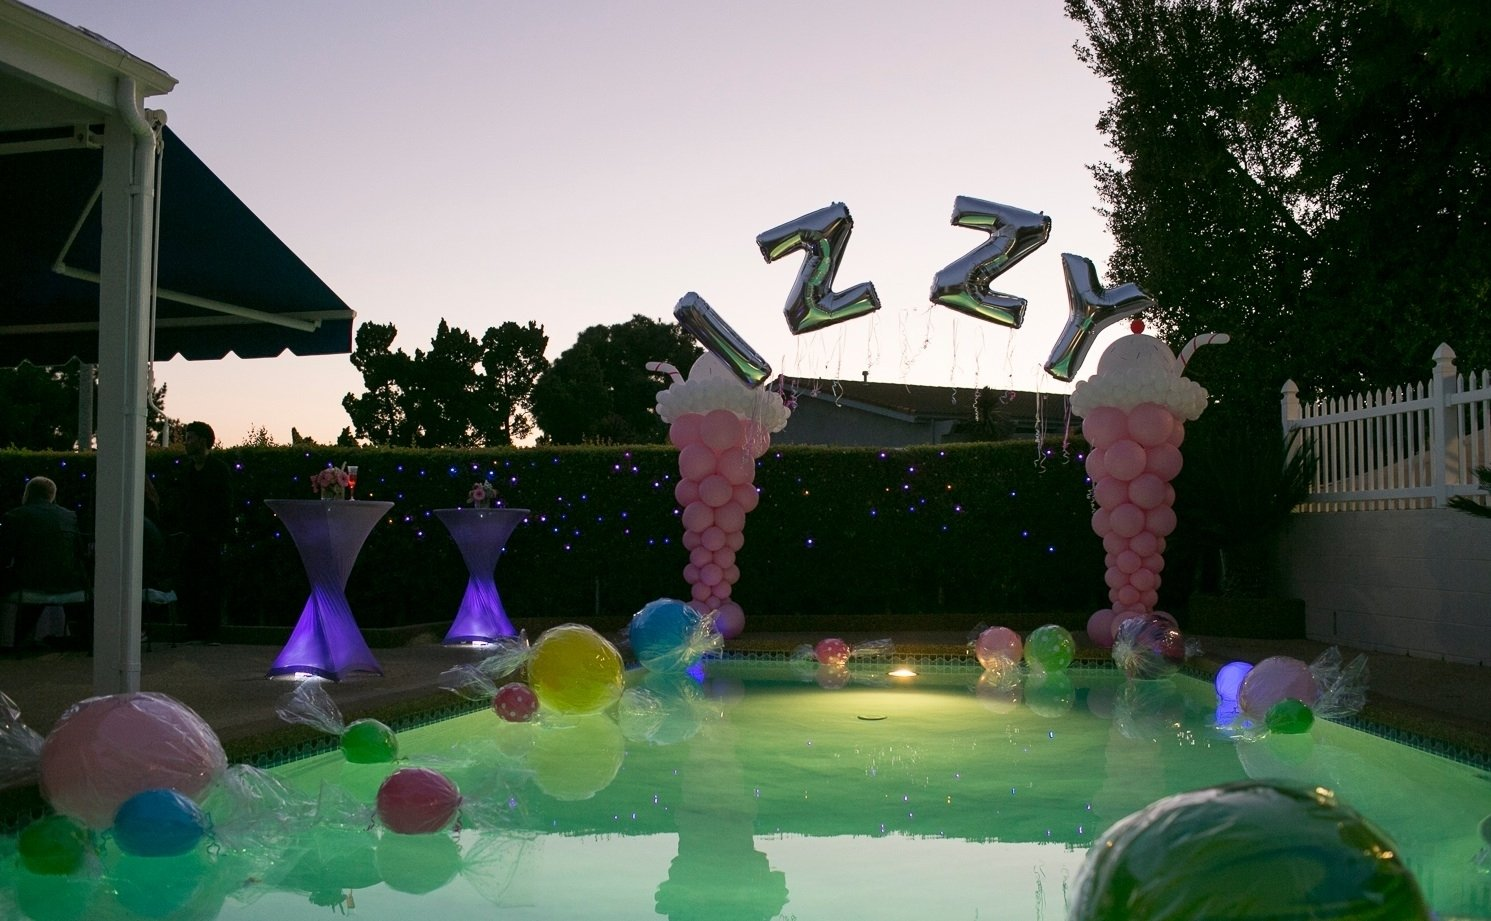 10 Wonderful Sweet 16 Pool Party Ideas sweet 16 pool party decorations inside party ideas simple sweet 2020